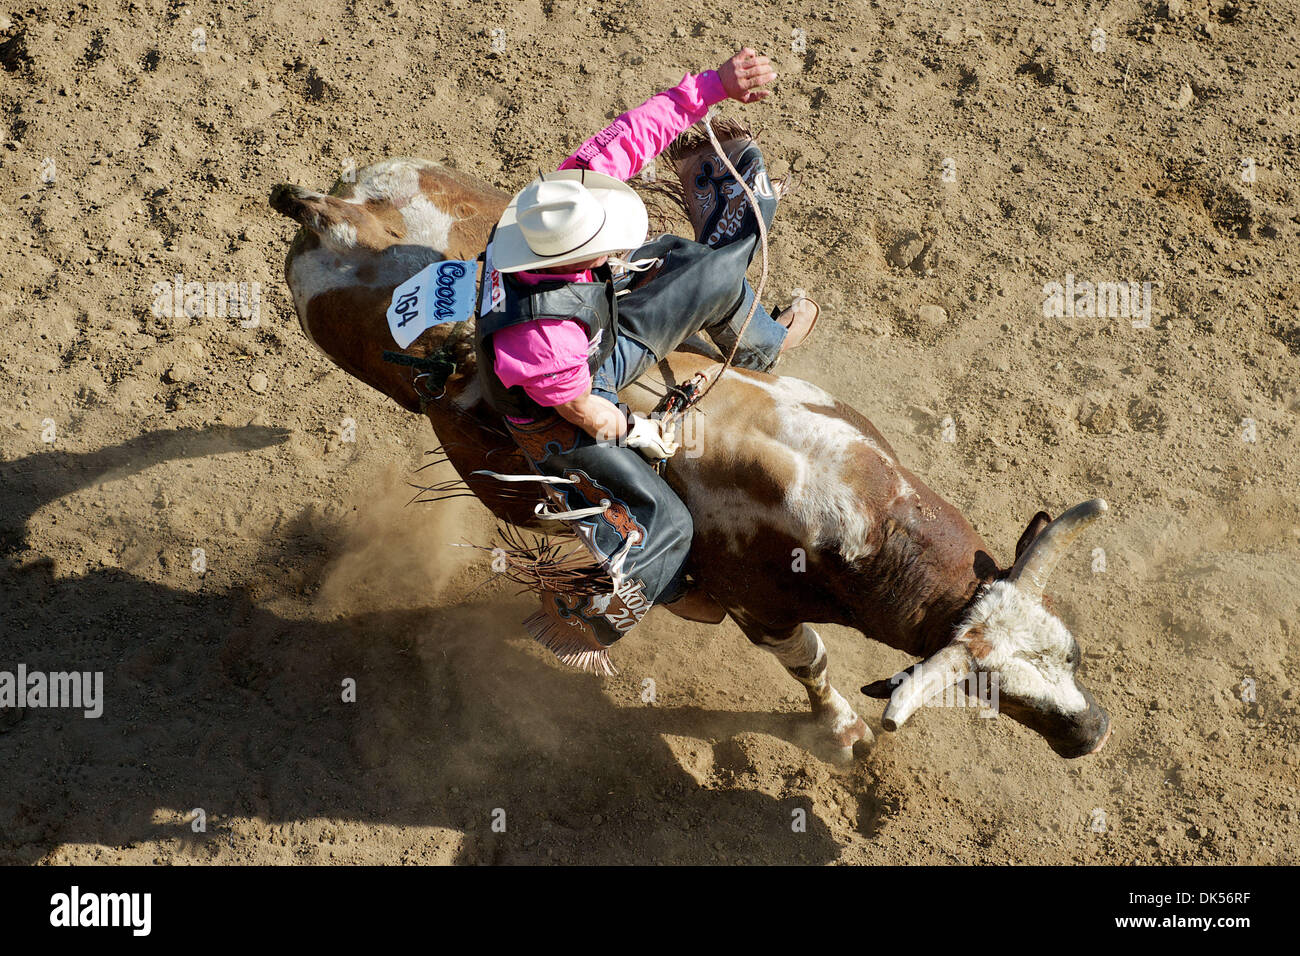 Apr. 24, 2011 - Clovis, California, U.S - Ardie Maier of Timber Lake, SD rides Mean One at the Clovis Rodeo. (Credit Image: © Matt Cohen/Southcreek Global/ZUMAPRESS.com) - Stock Image